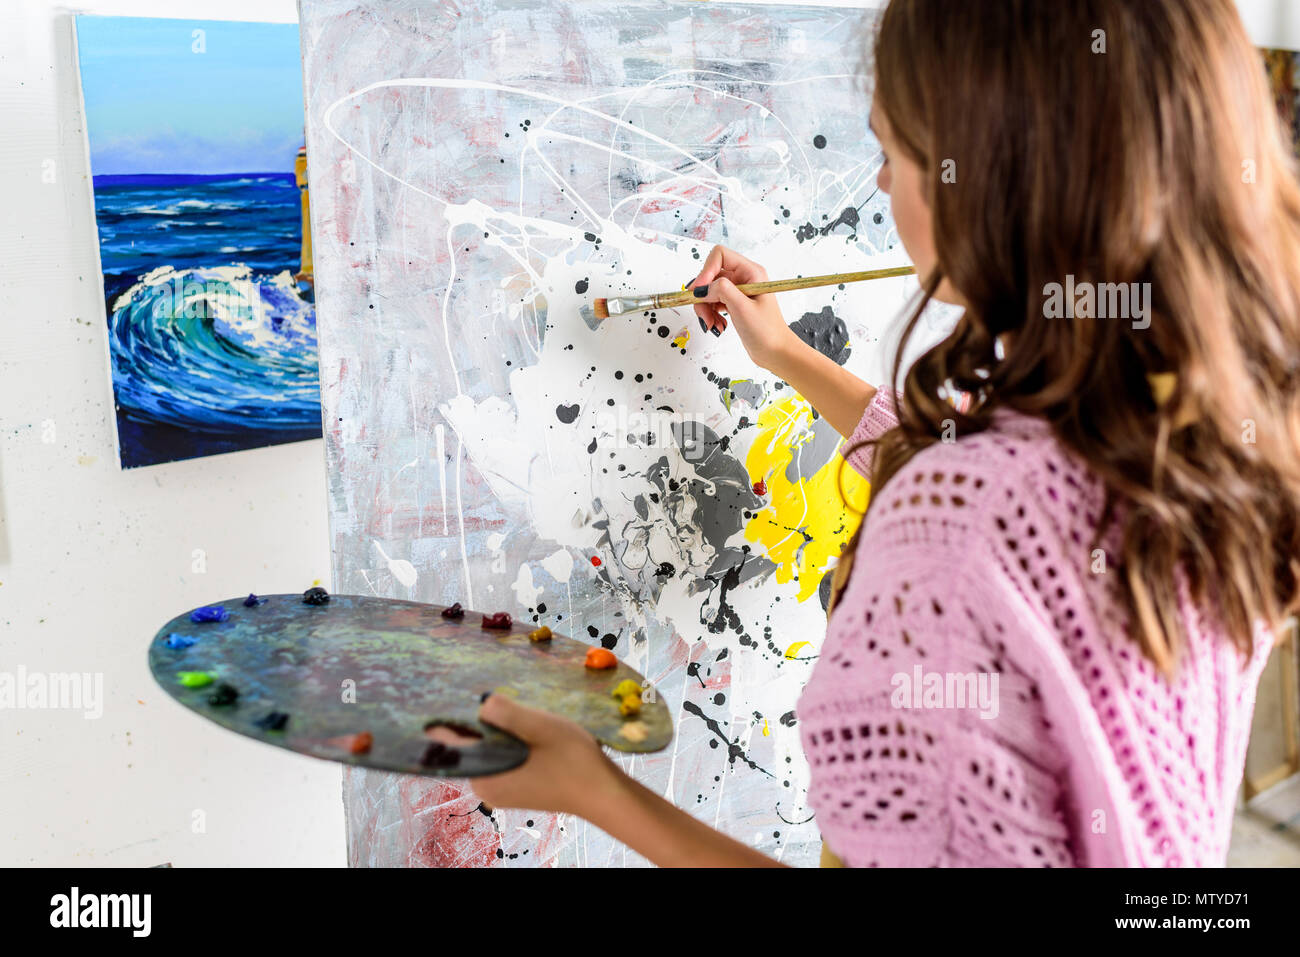 Artist Painting High Resolution Stock Photography And Images Alamy